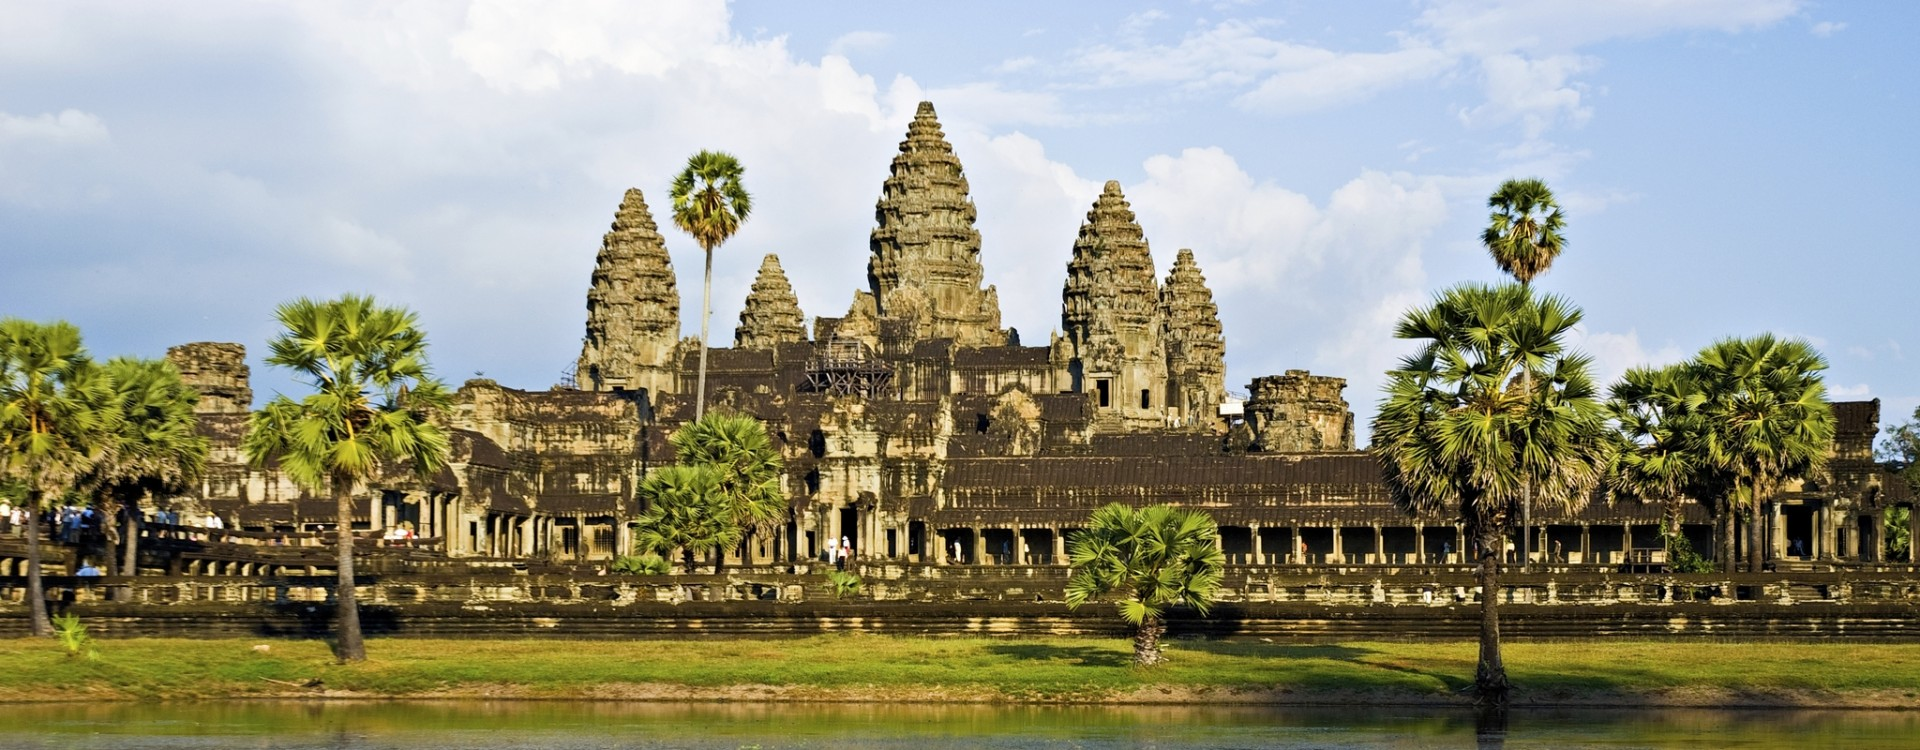 CDT - Temples and Jungles of Cambodia